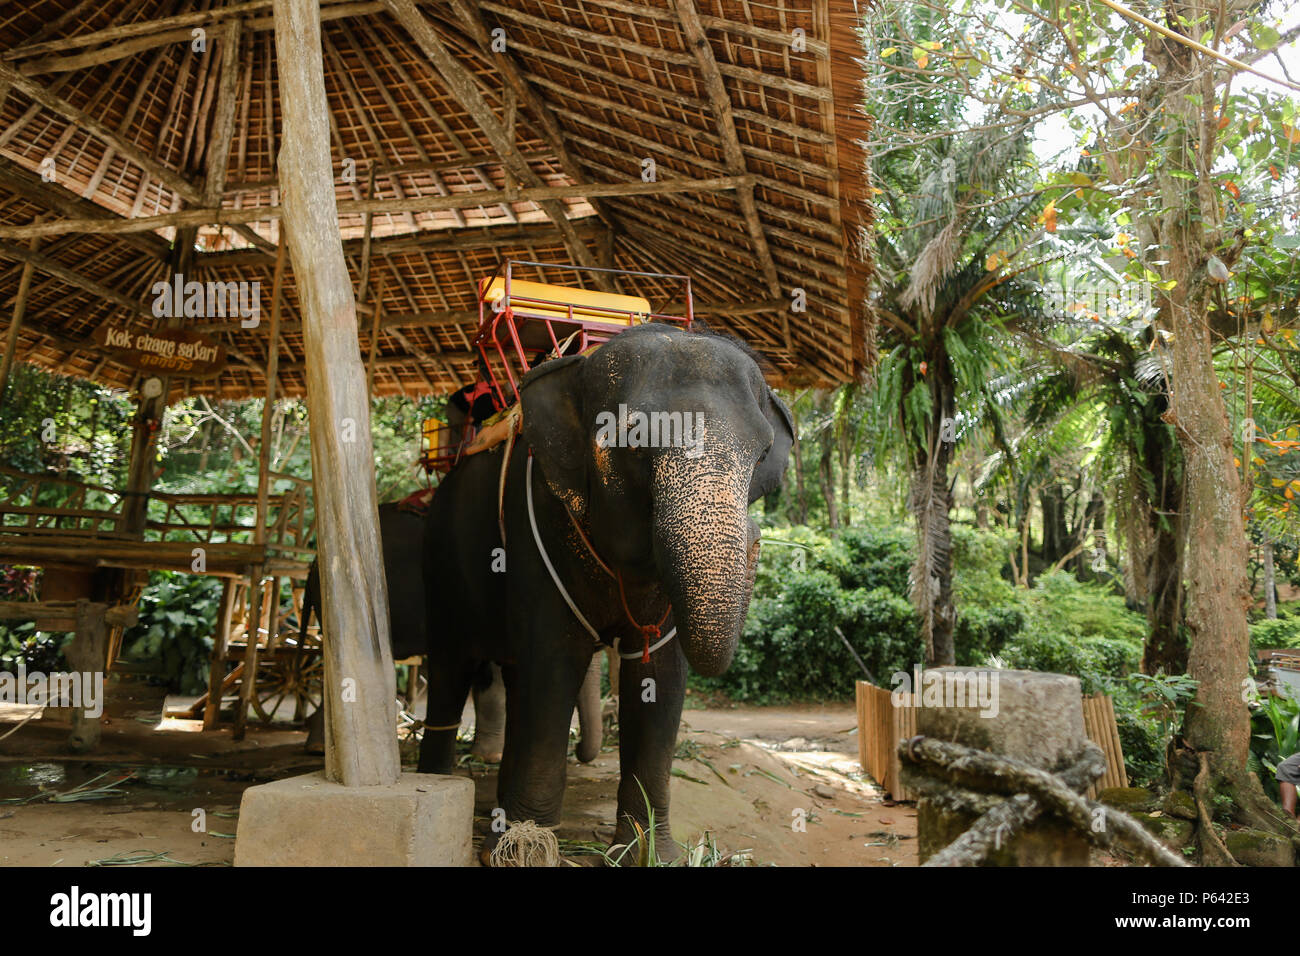 Domesticated and tied sad elephant standing with saddle. - Stock Image